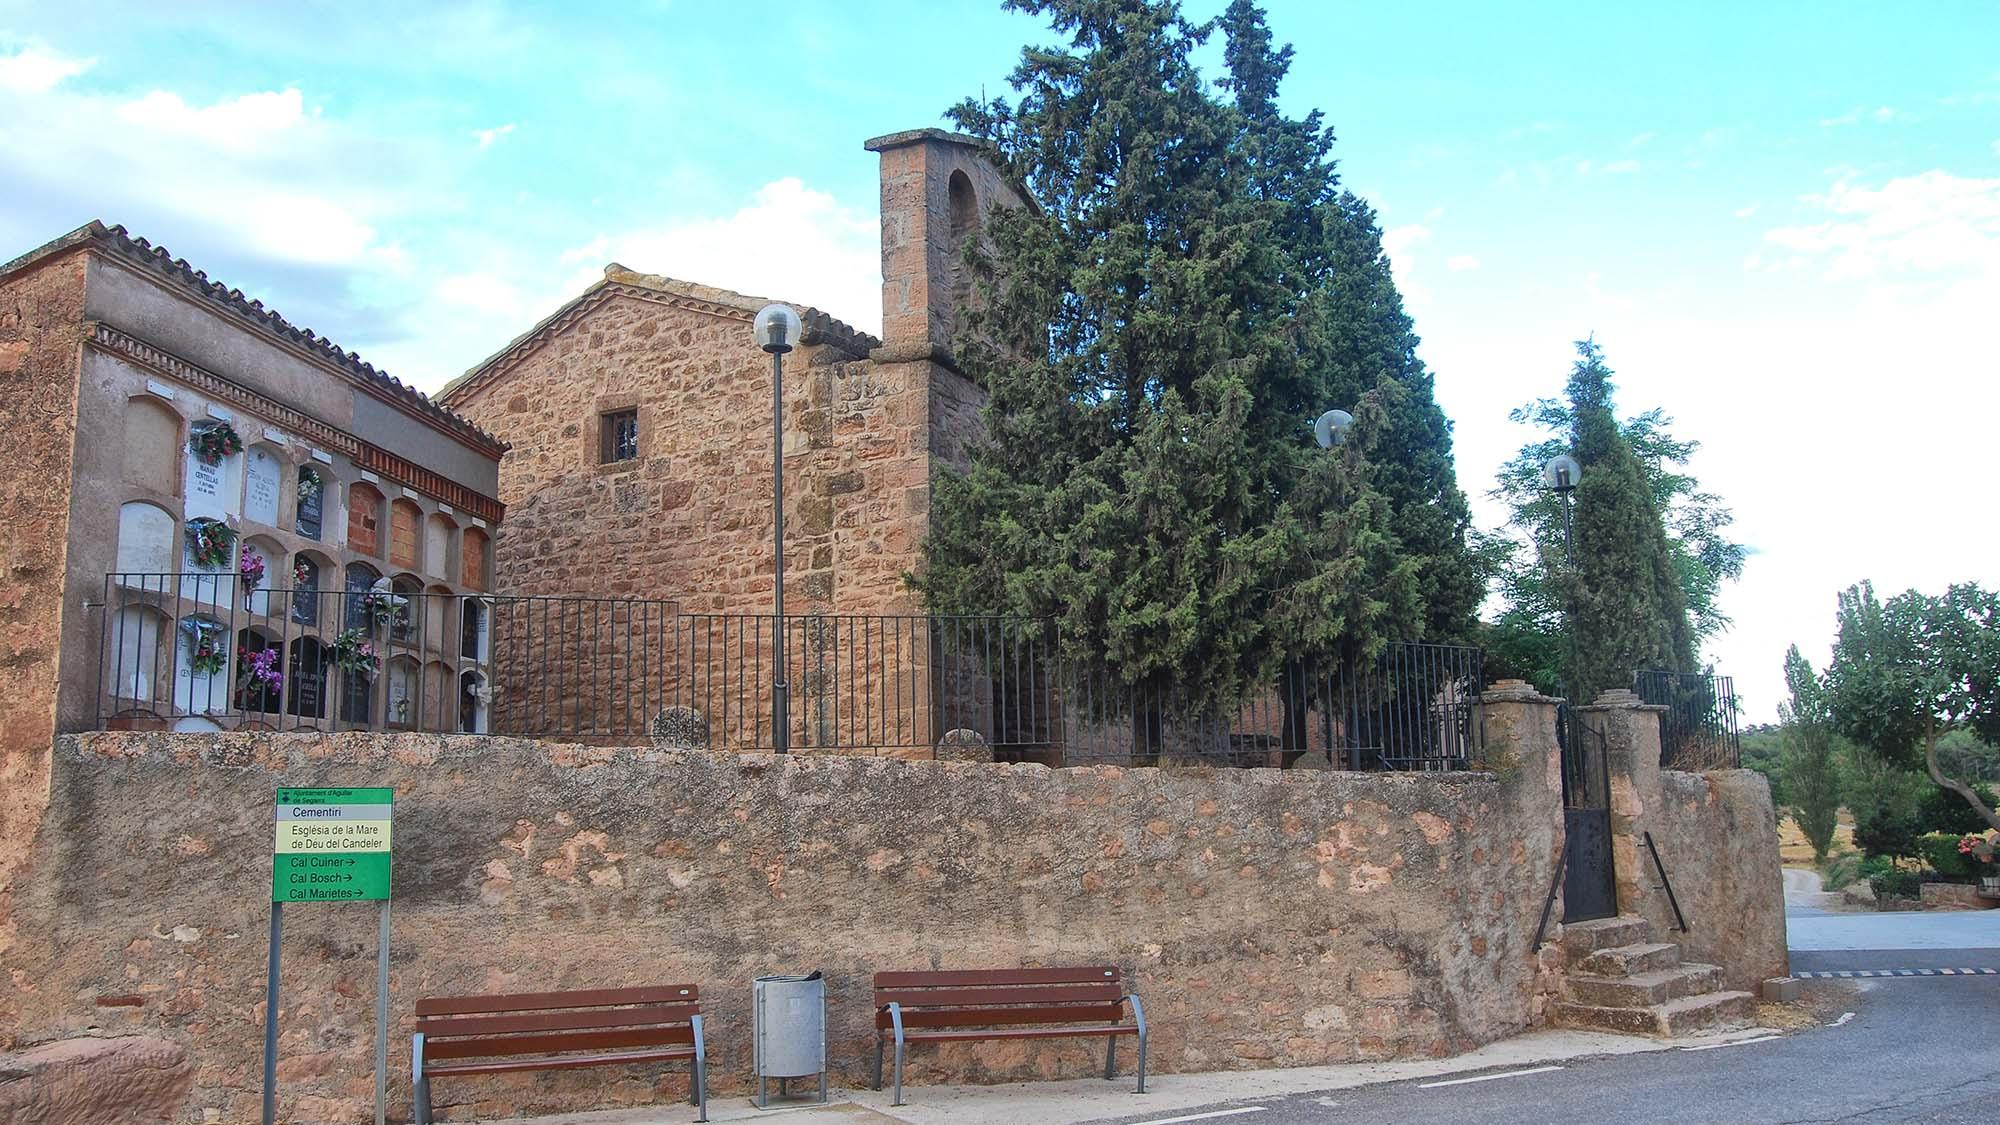 Church of Santa Maria de les Coromines